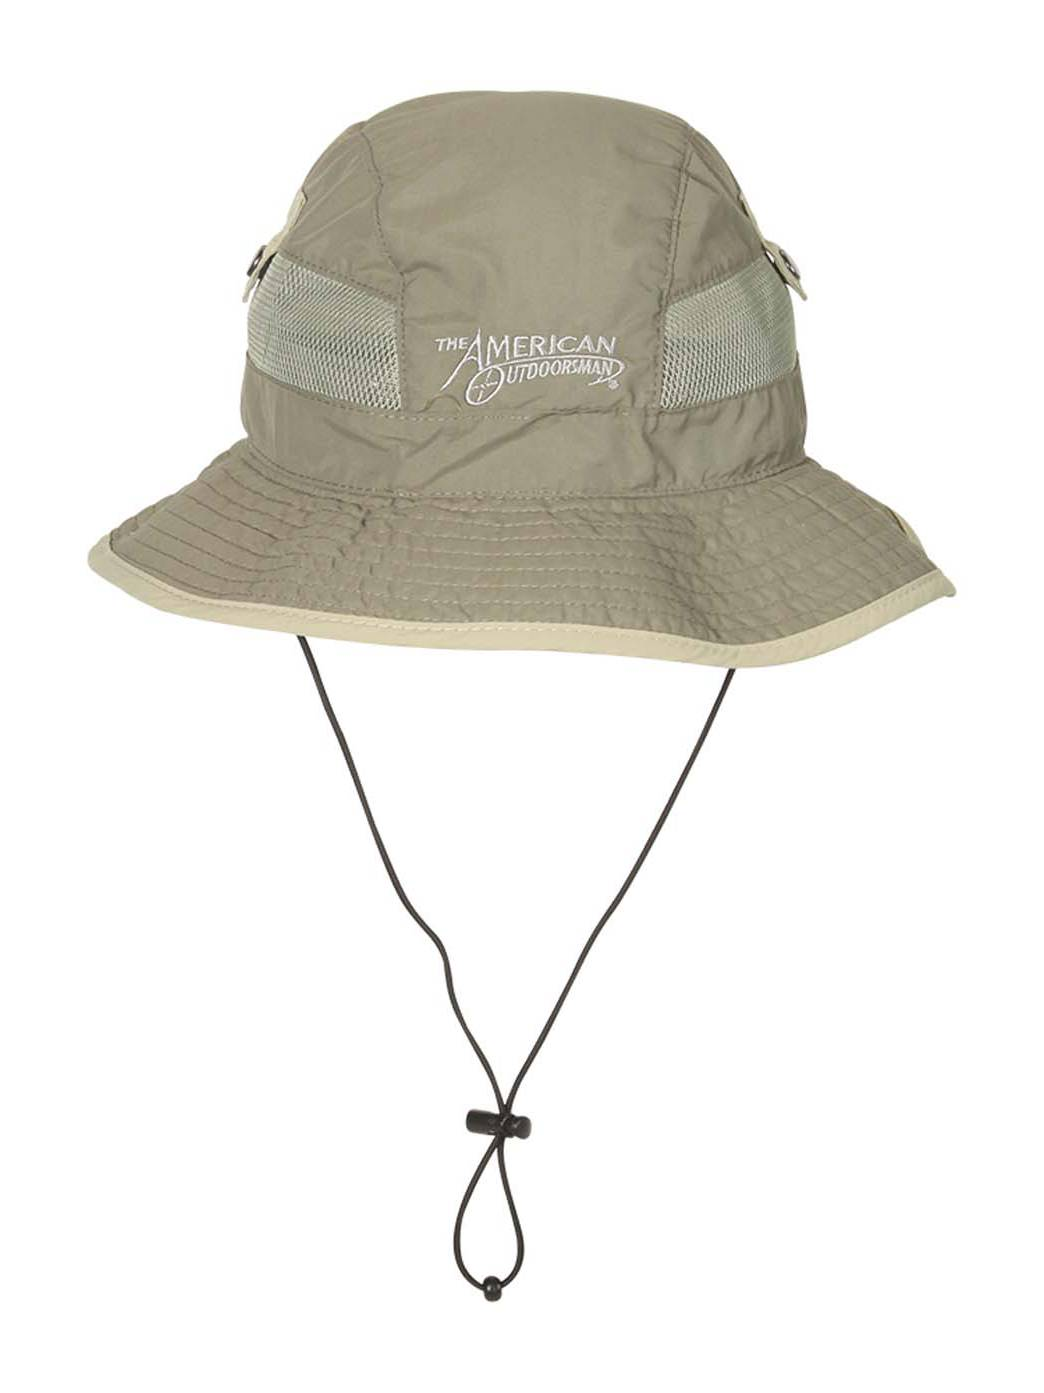 43a02fad20a American Outdoorsman Taslon UV Bucket Hat - Navy - X-Large